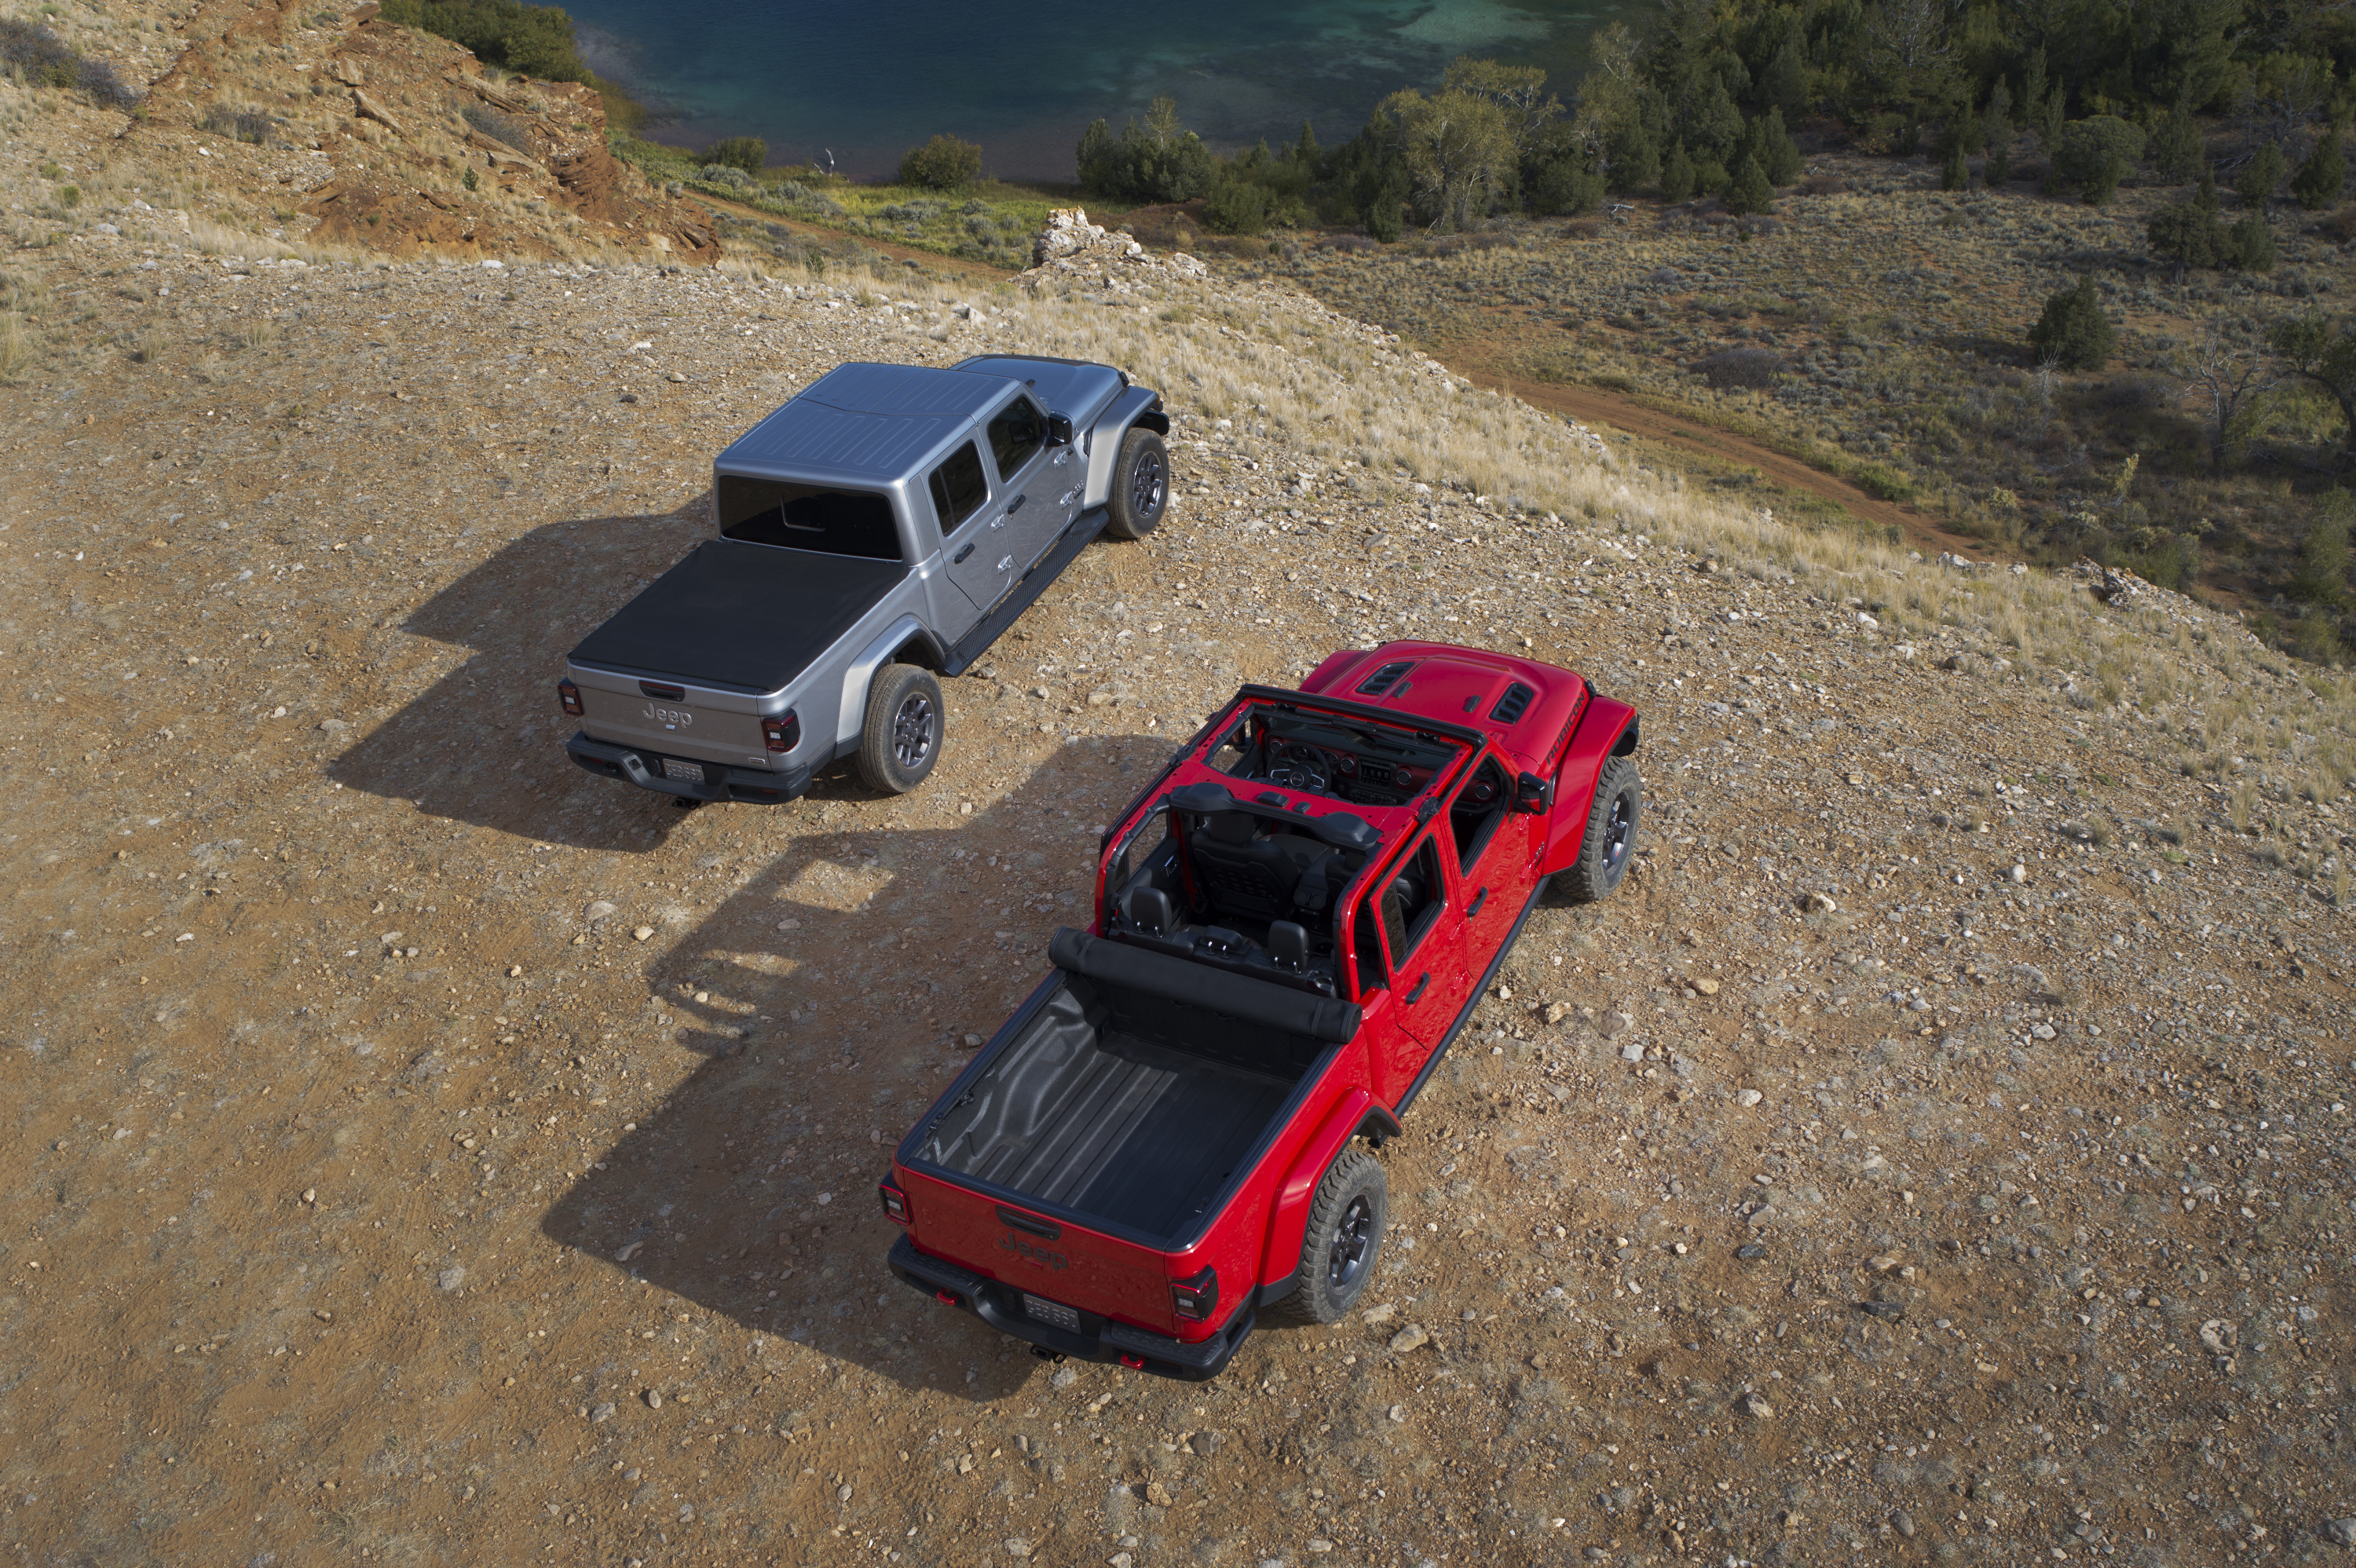 2020 Jeep® Gladiator Overland and Gladiator Rubicon